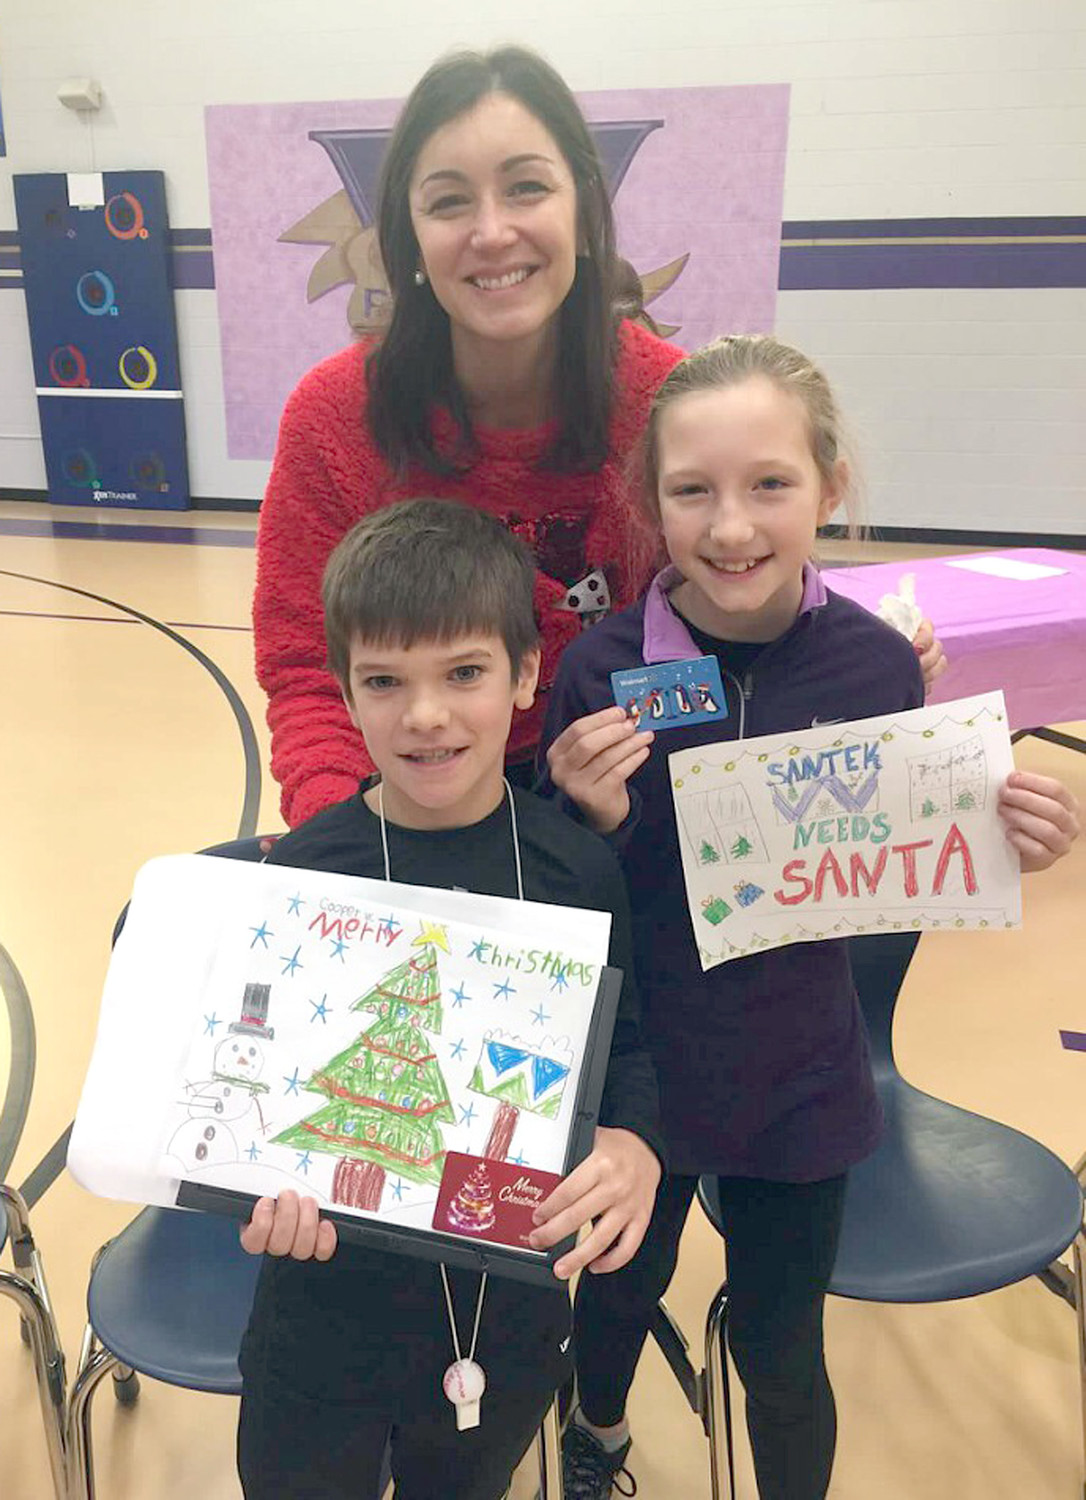 Third-grade teacher Emily Buckner proudly poses with students Cooper Weeks and Izzy Smith, and their winning card designs.